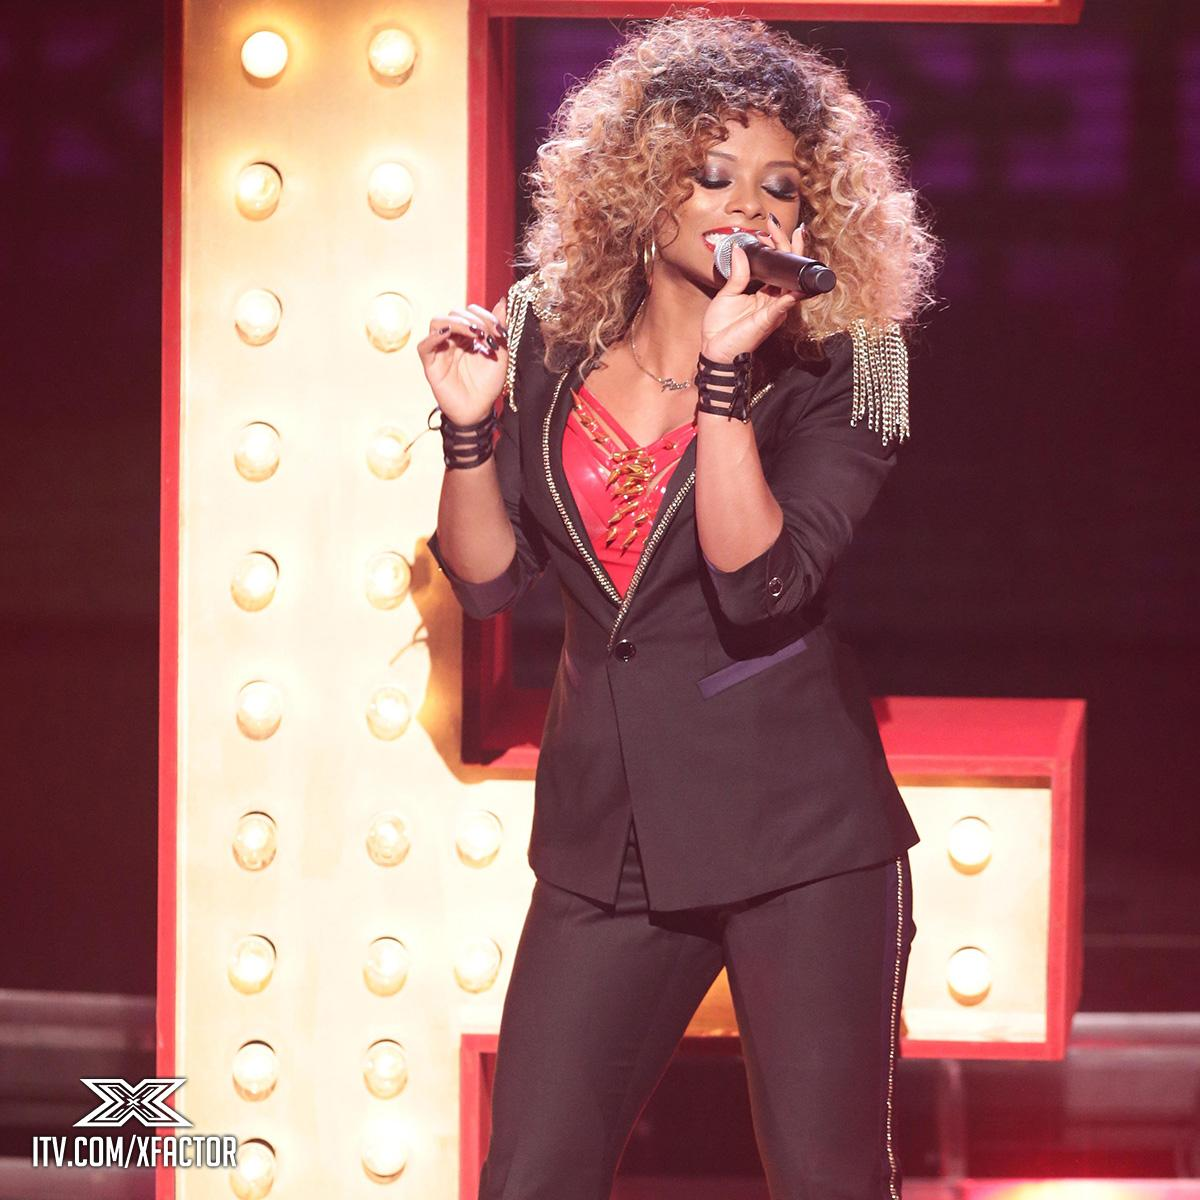 She's bringing the swag ce soir. Will Simon get out his personalised bank notes for @FleurEast?👠 #XFactorMoviesWeek http://t.co/mR3tRewND8